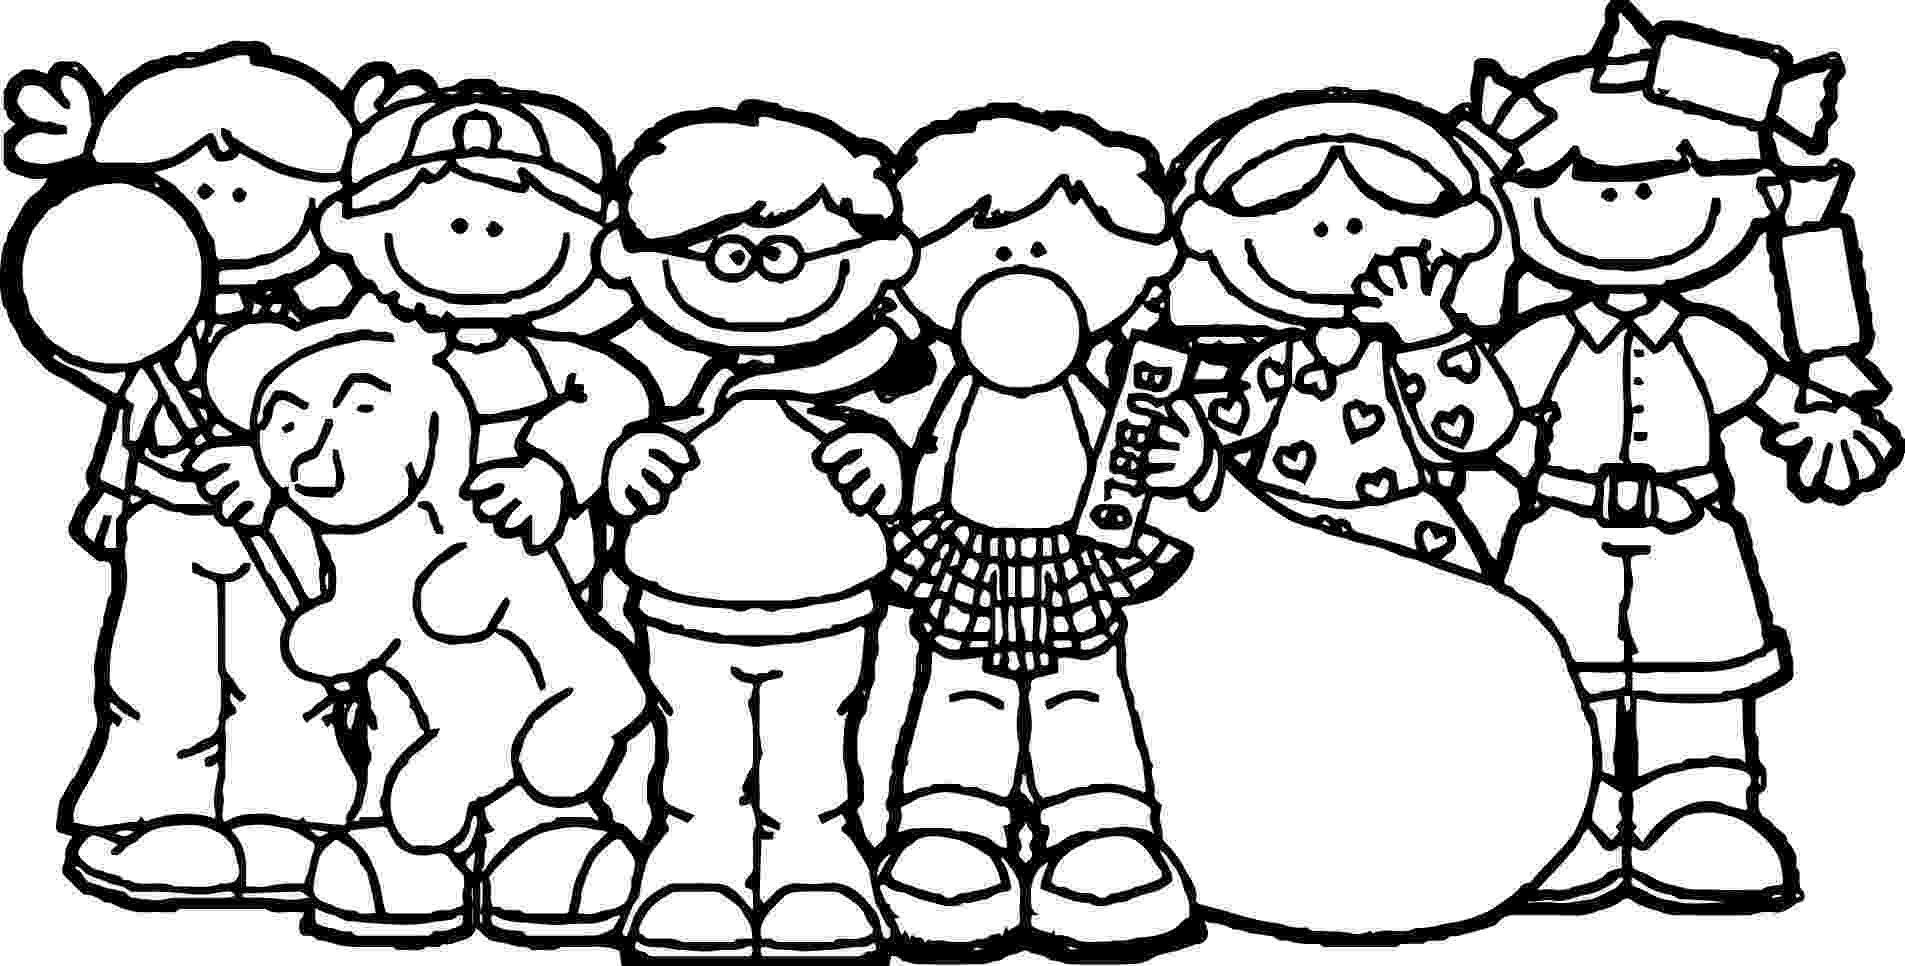 3rd grade coloring pages coloring pages for 3rd graders coloring home pages grade 3rd coloring